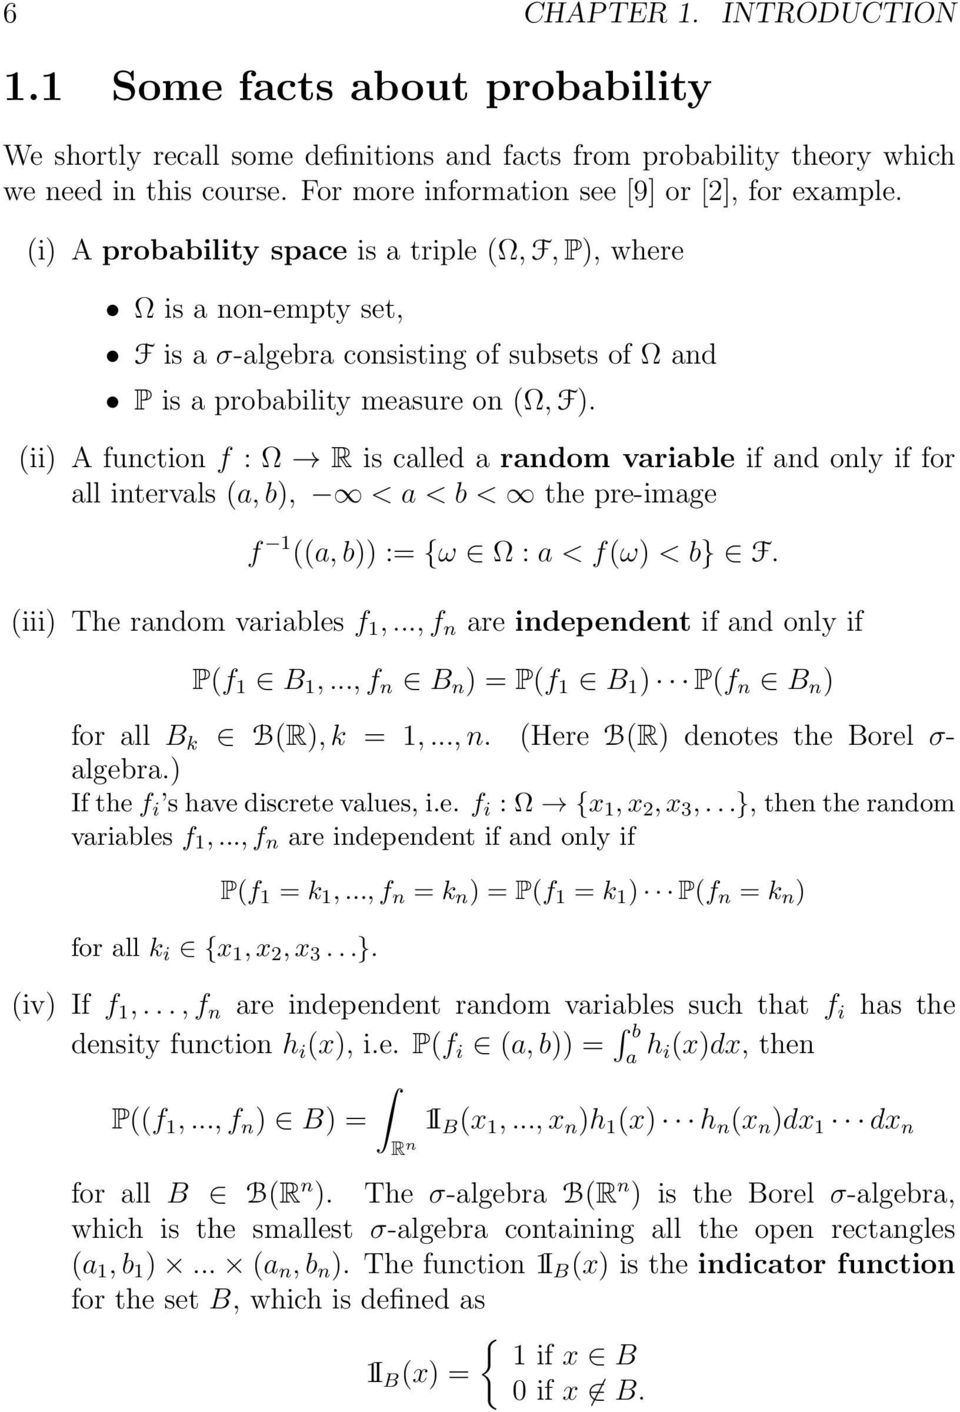 (i) A probability space is a triple (Ω, F, P), where Ω is a non-empty set, F is a σ-algebra consisting of subsets of Ω and P is a probability measure on (Ω, F).